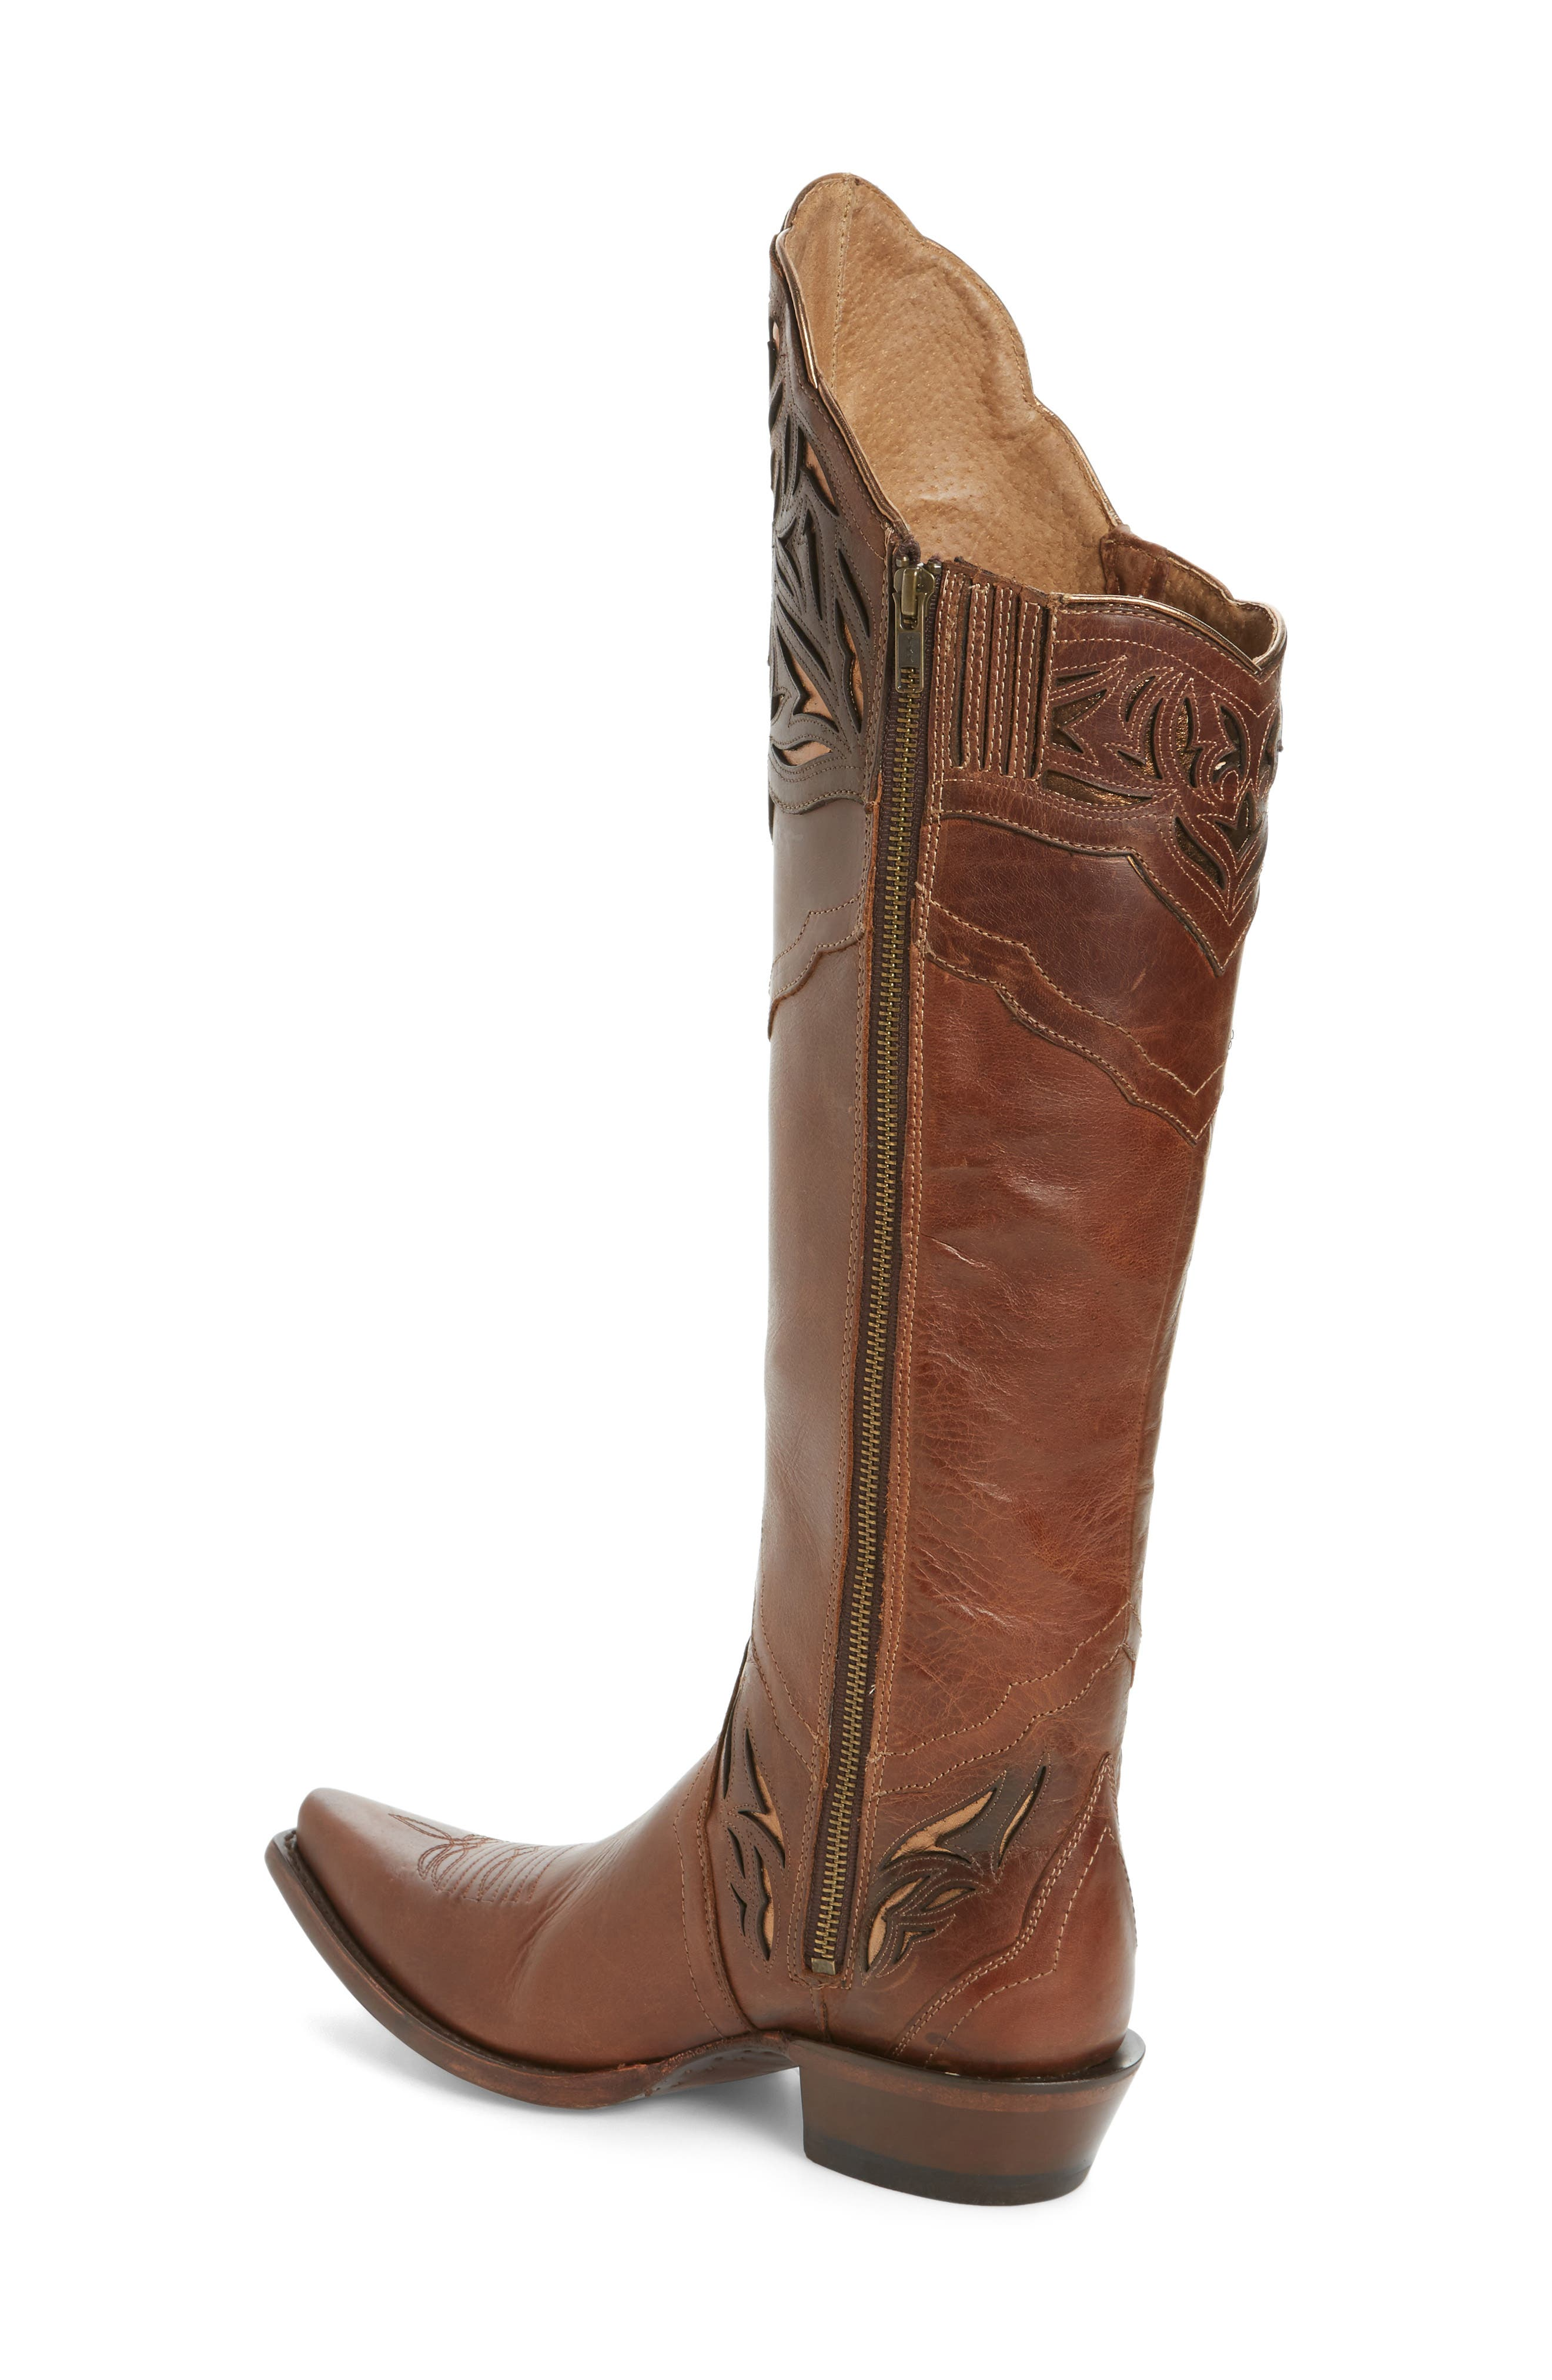 Chaparral Over the Knee Western Boot,                             Alternate thumbnail 2, color,                             200